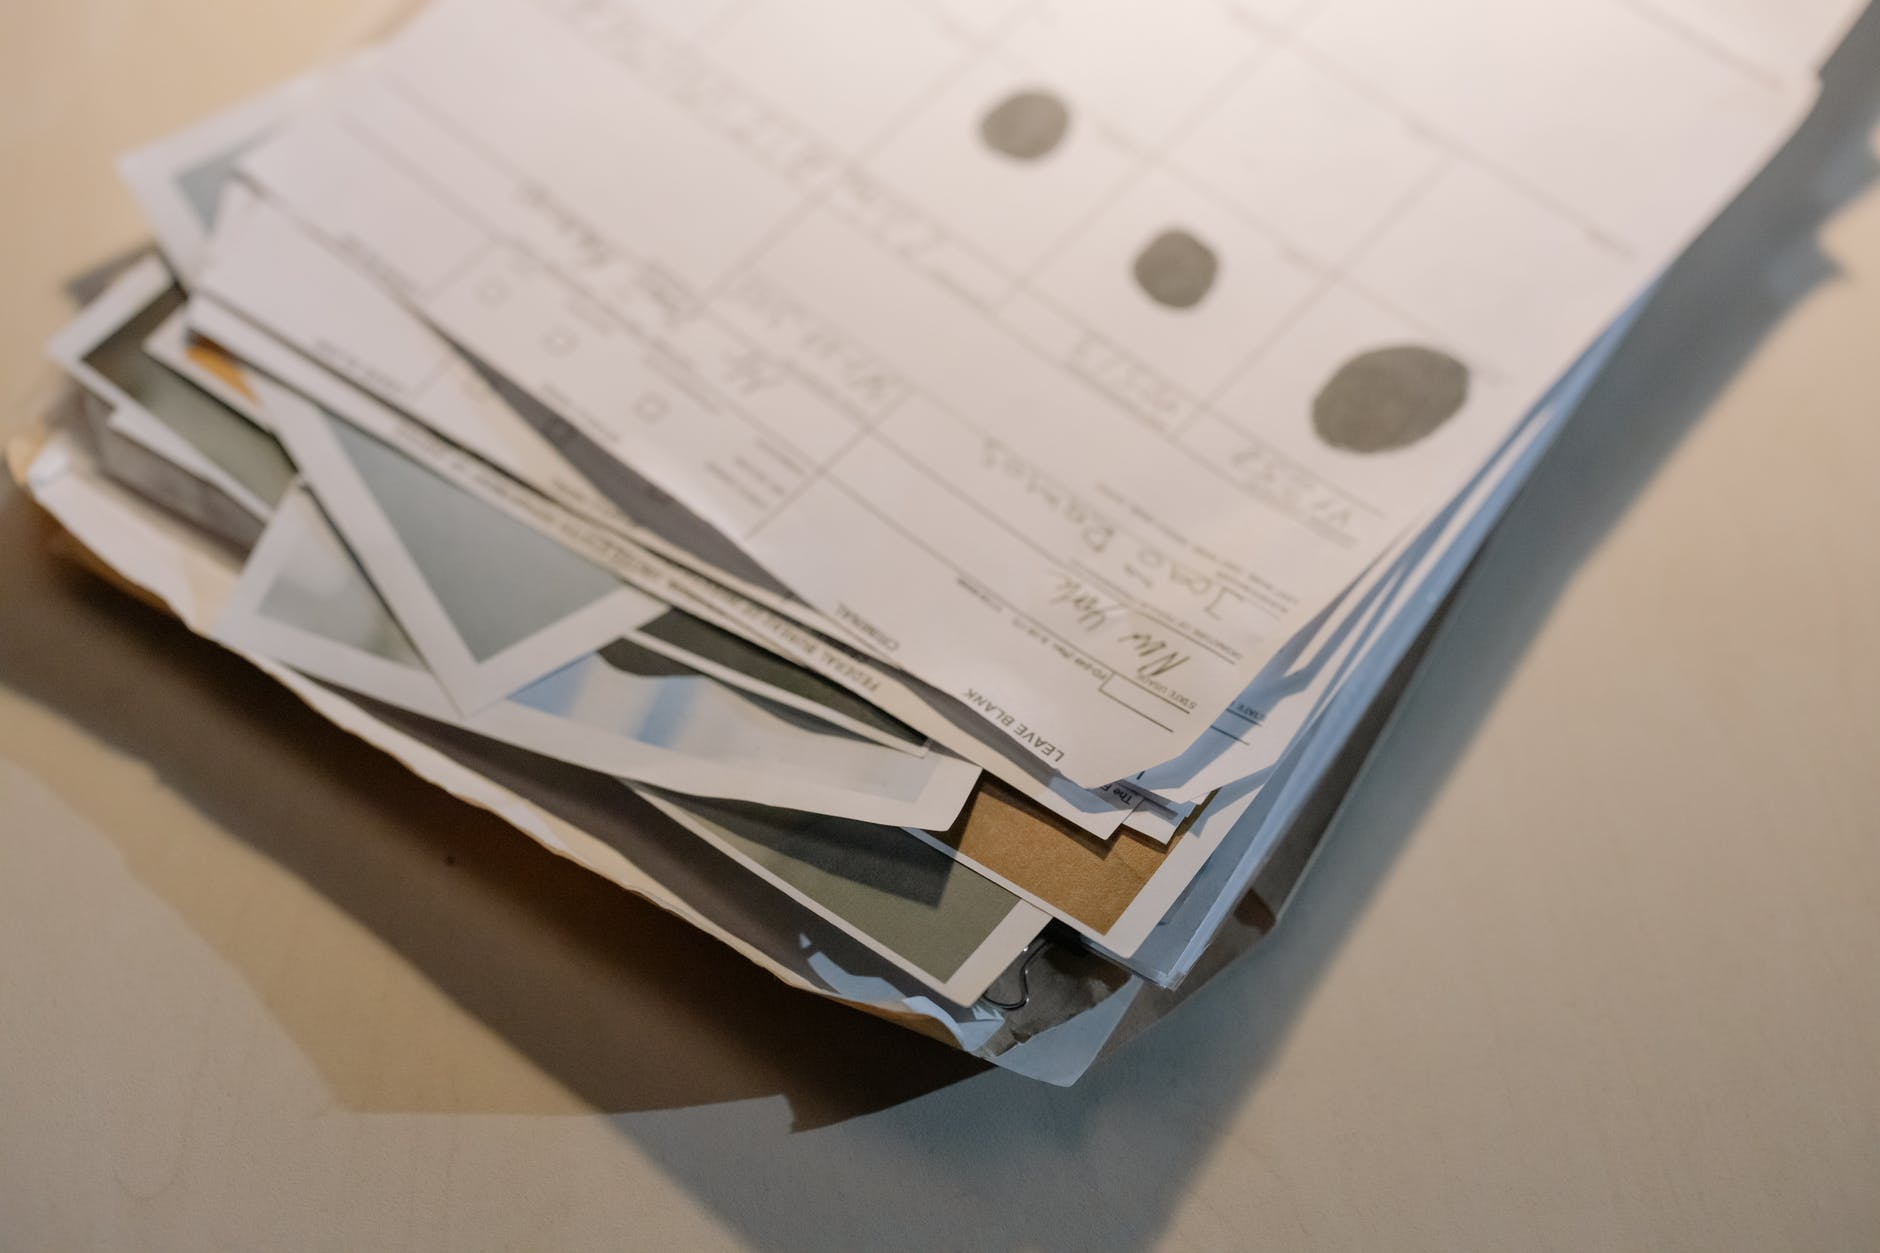 close up photo of file of papers